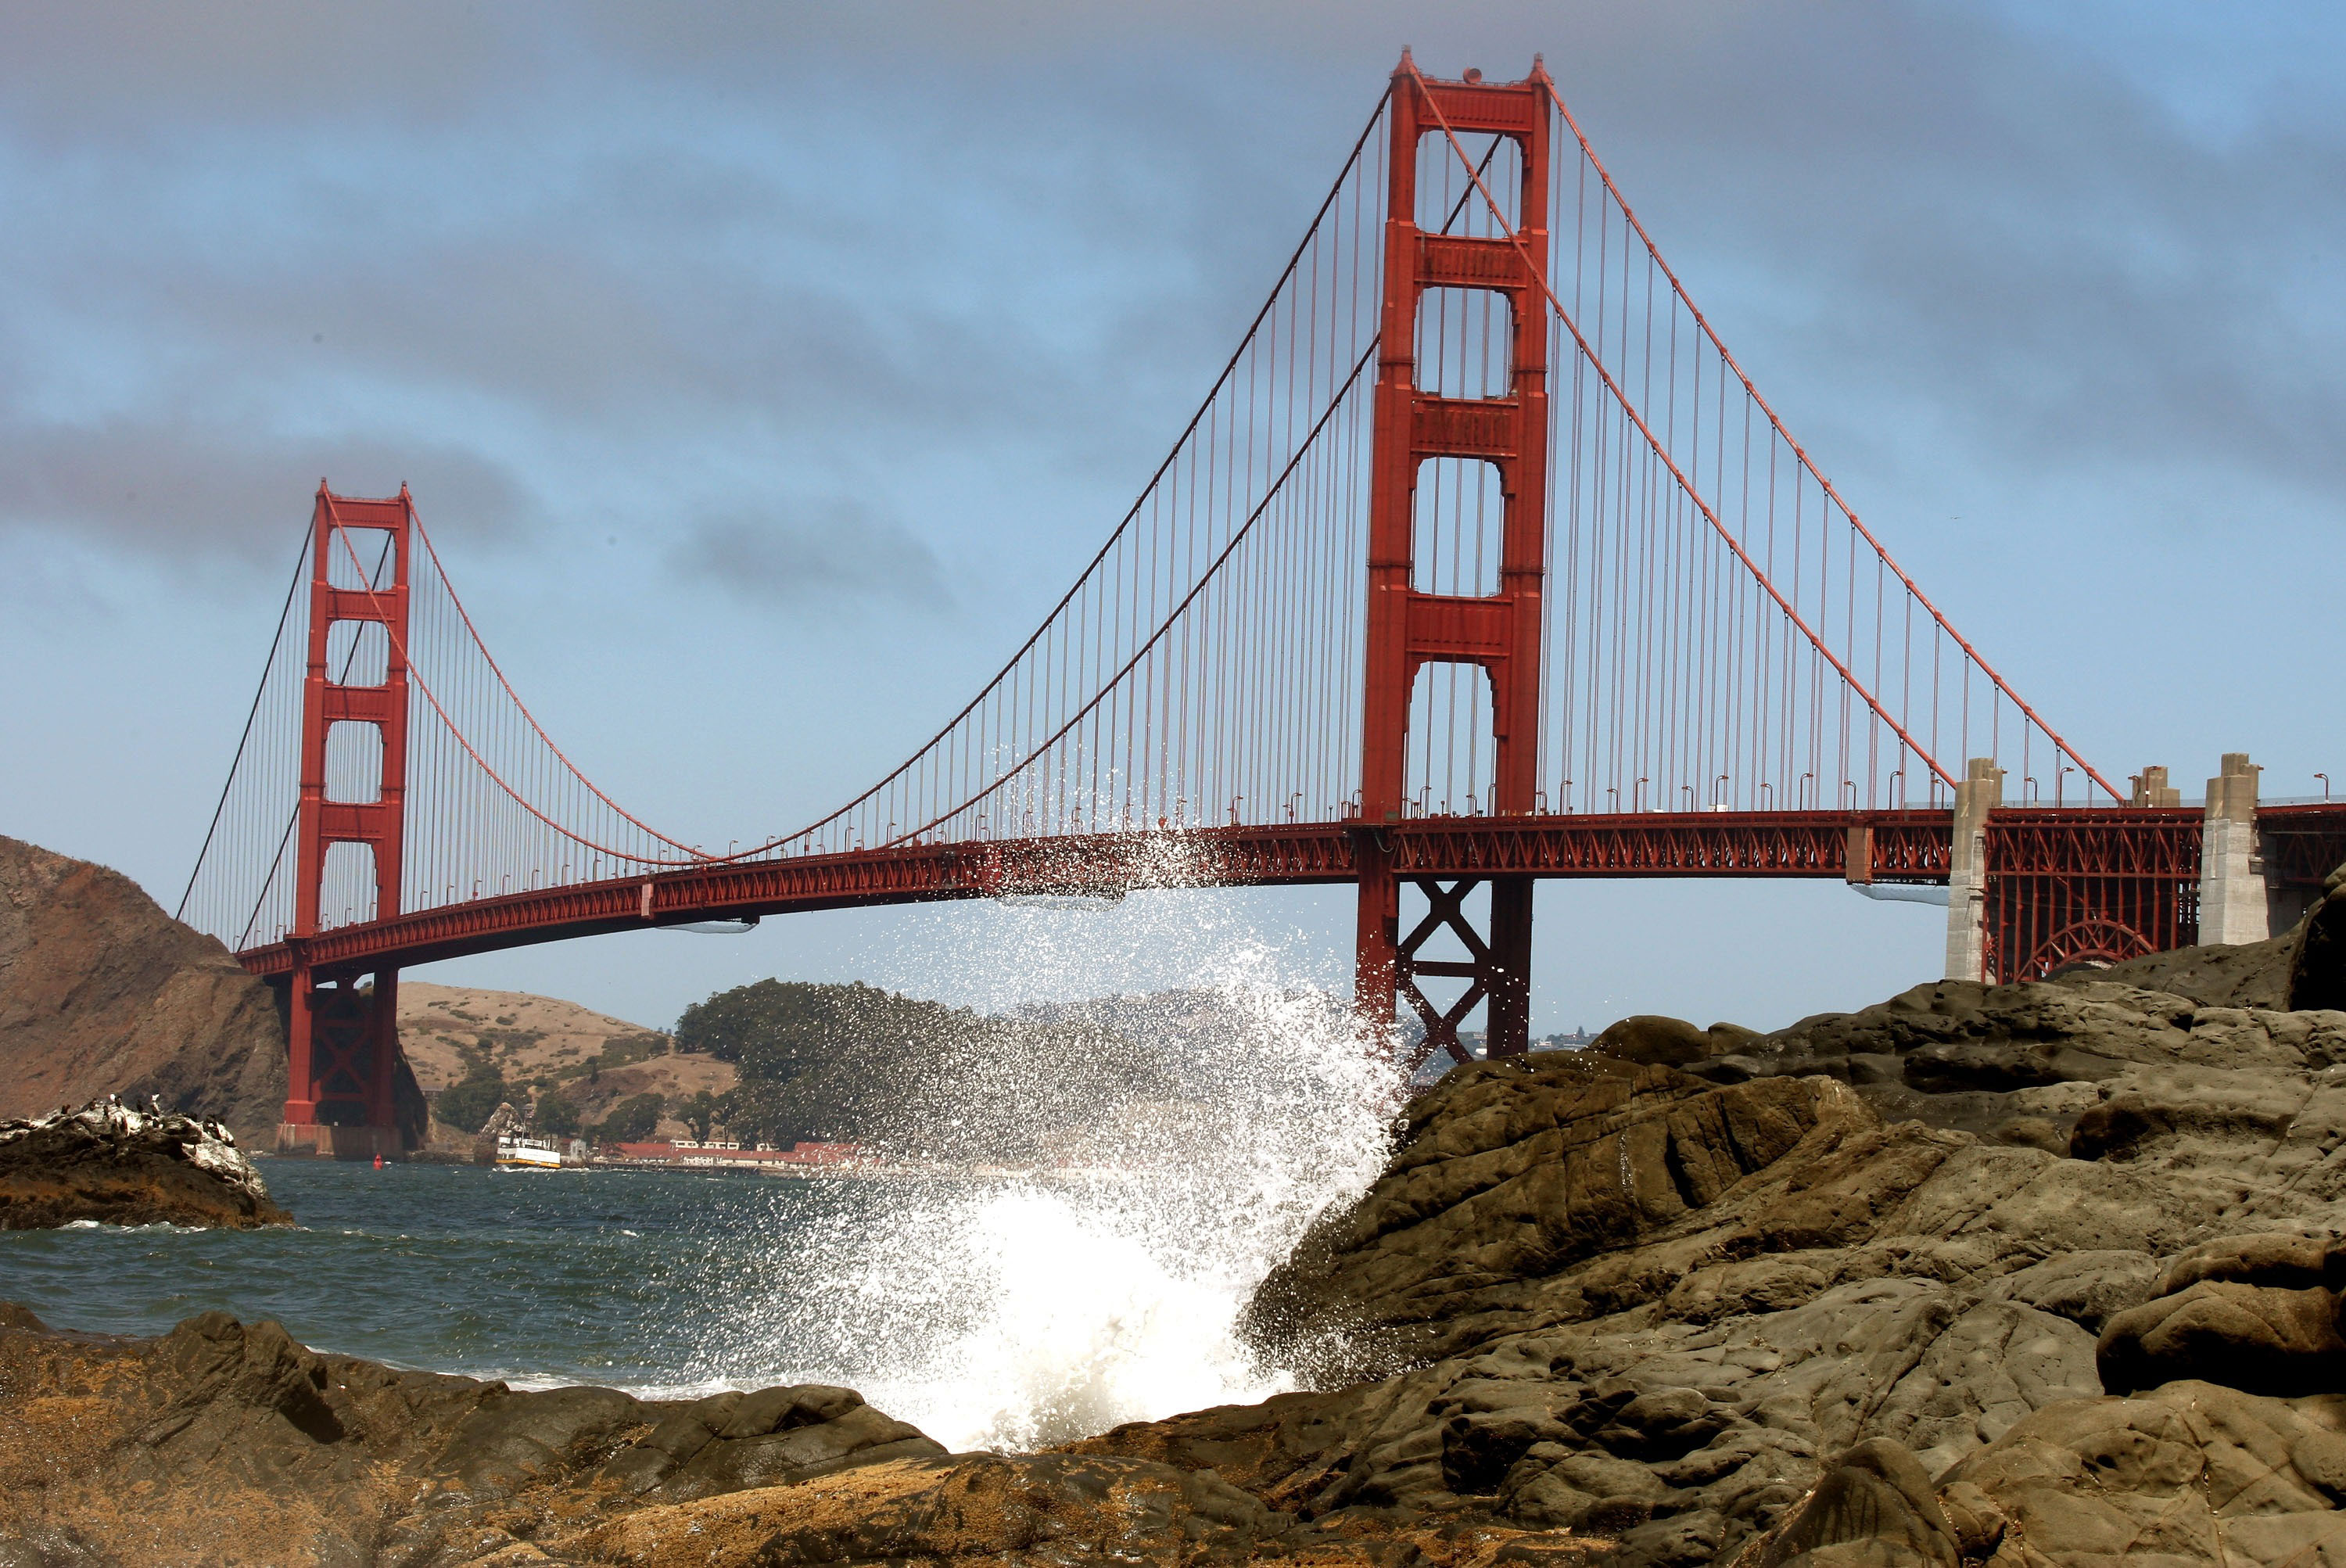 golden gate bridge tolltakers reach end of the line as